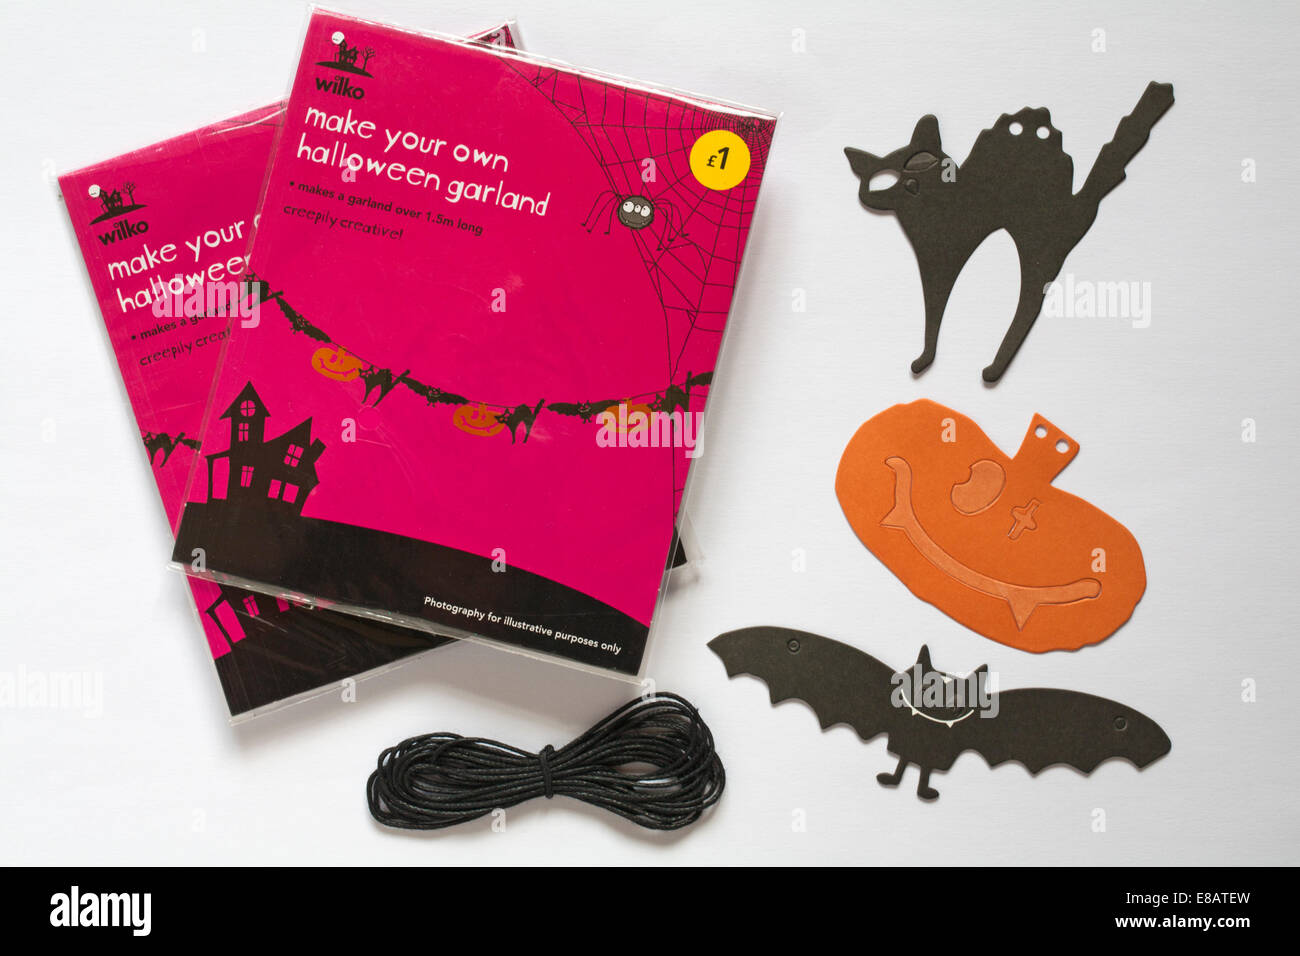 Wilko make your own halloween garland with black cats. bats, pumpkins and cord isolated on white background - Stock Image